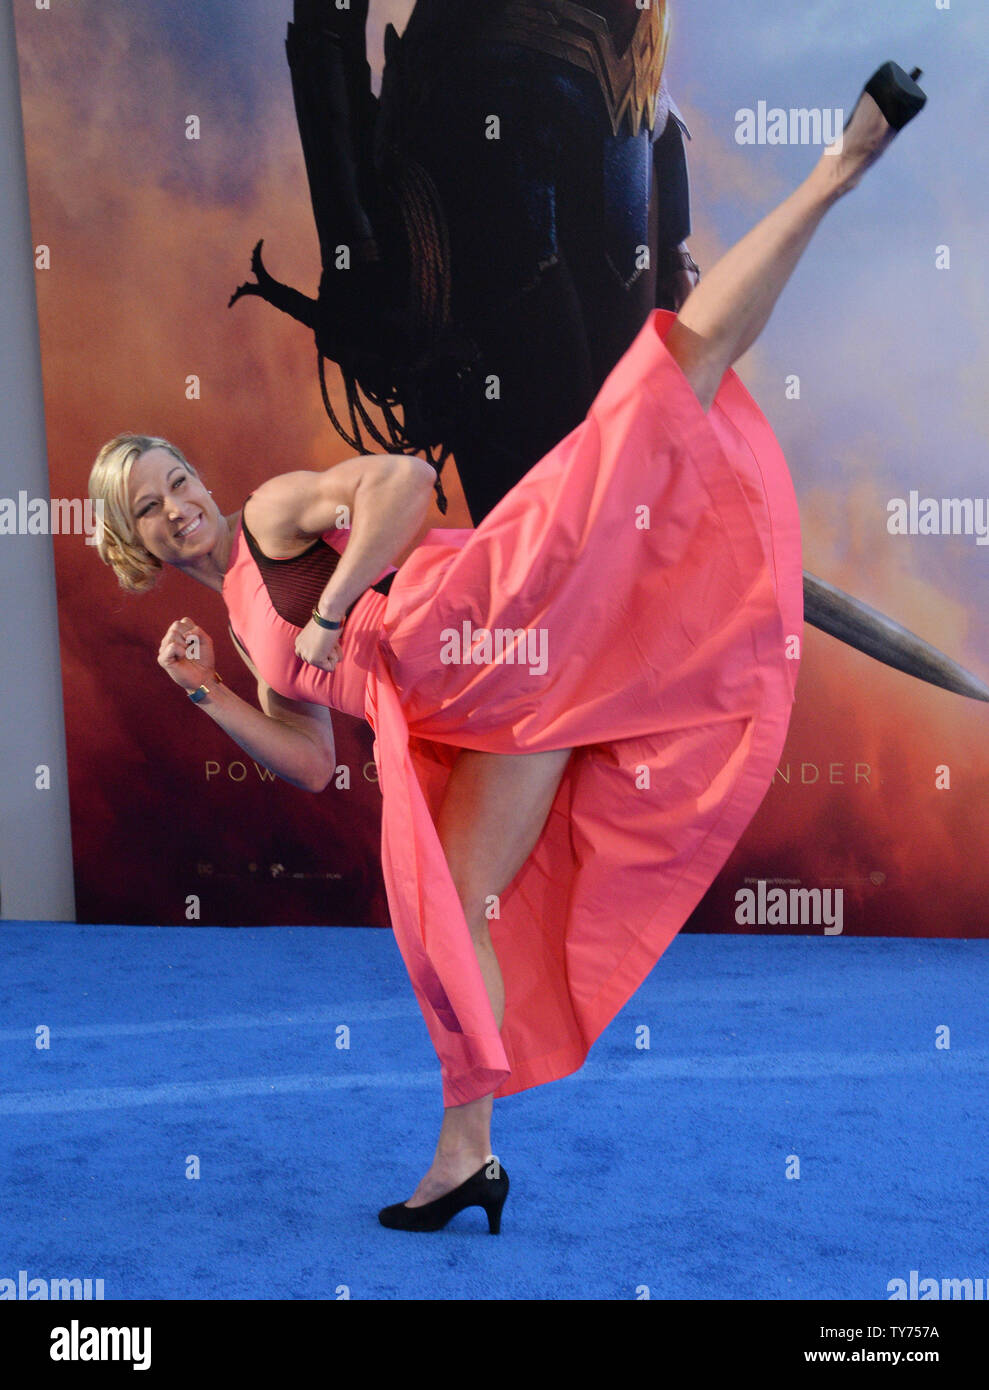 Jessie Graff High Resolution Stock Photography And Images Alamy